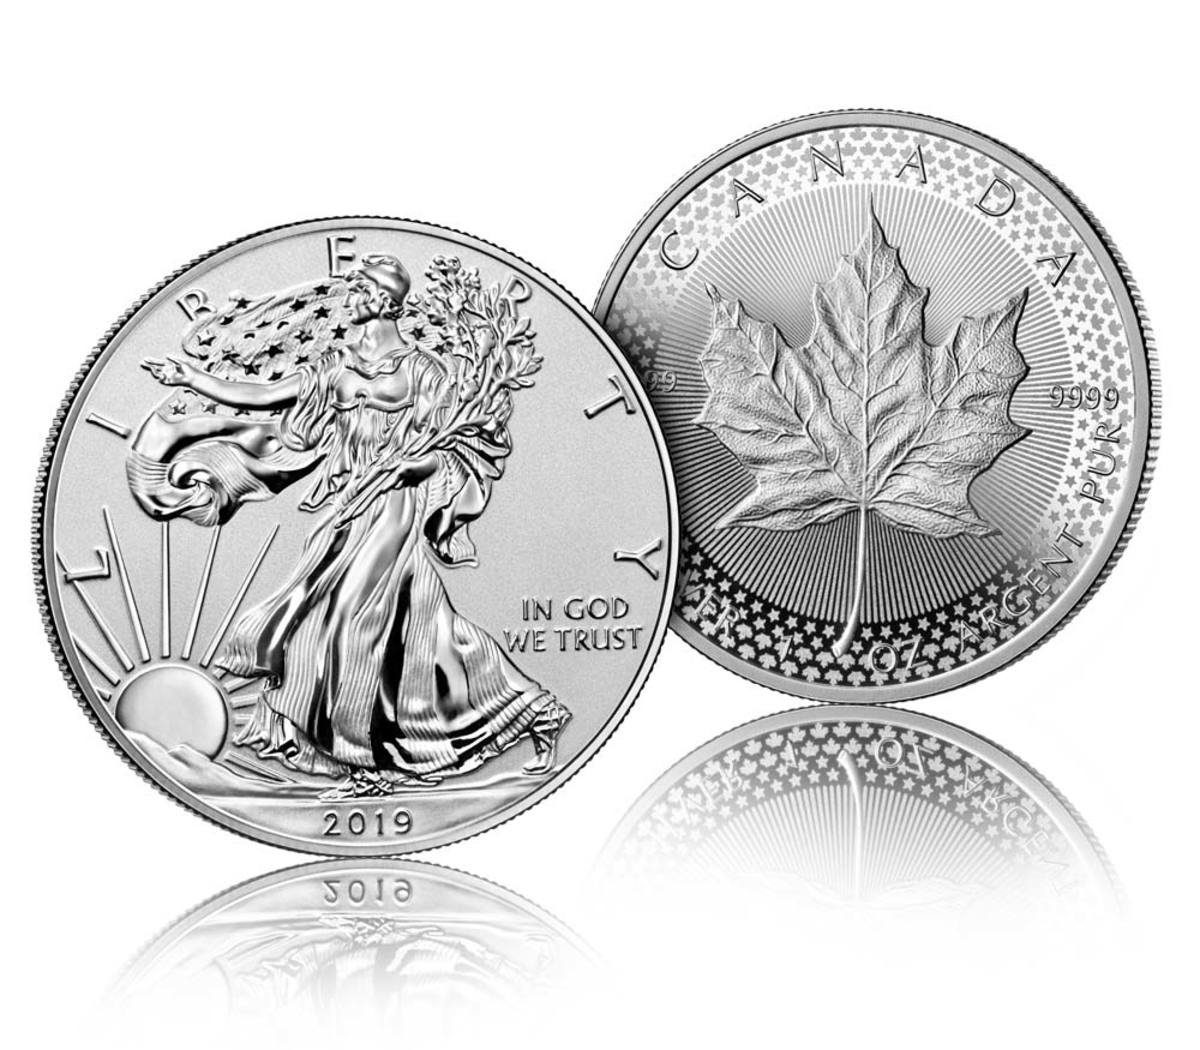 The U.S. coin is one troy ounce of .999 fine silver, and the Canadian coin is one troy ounce of .9999 pure silver (Images courtesy of the US Mint)